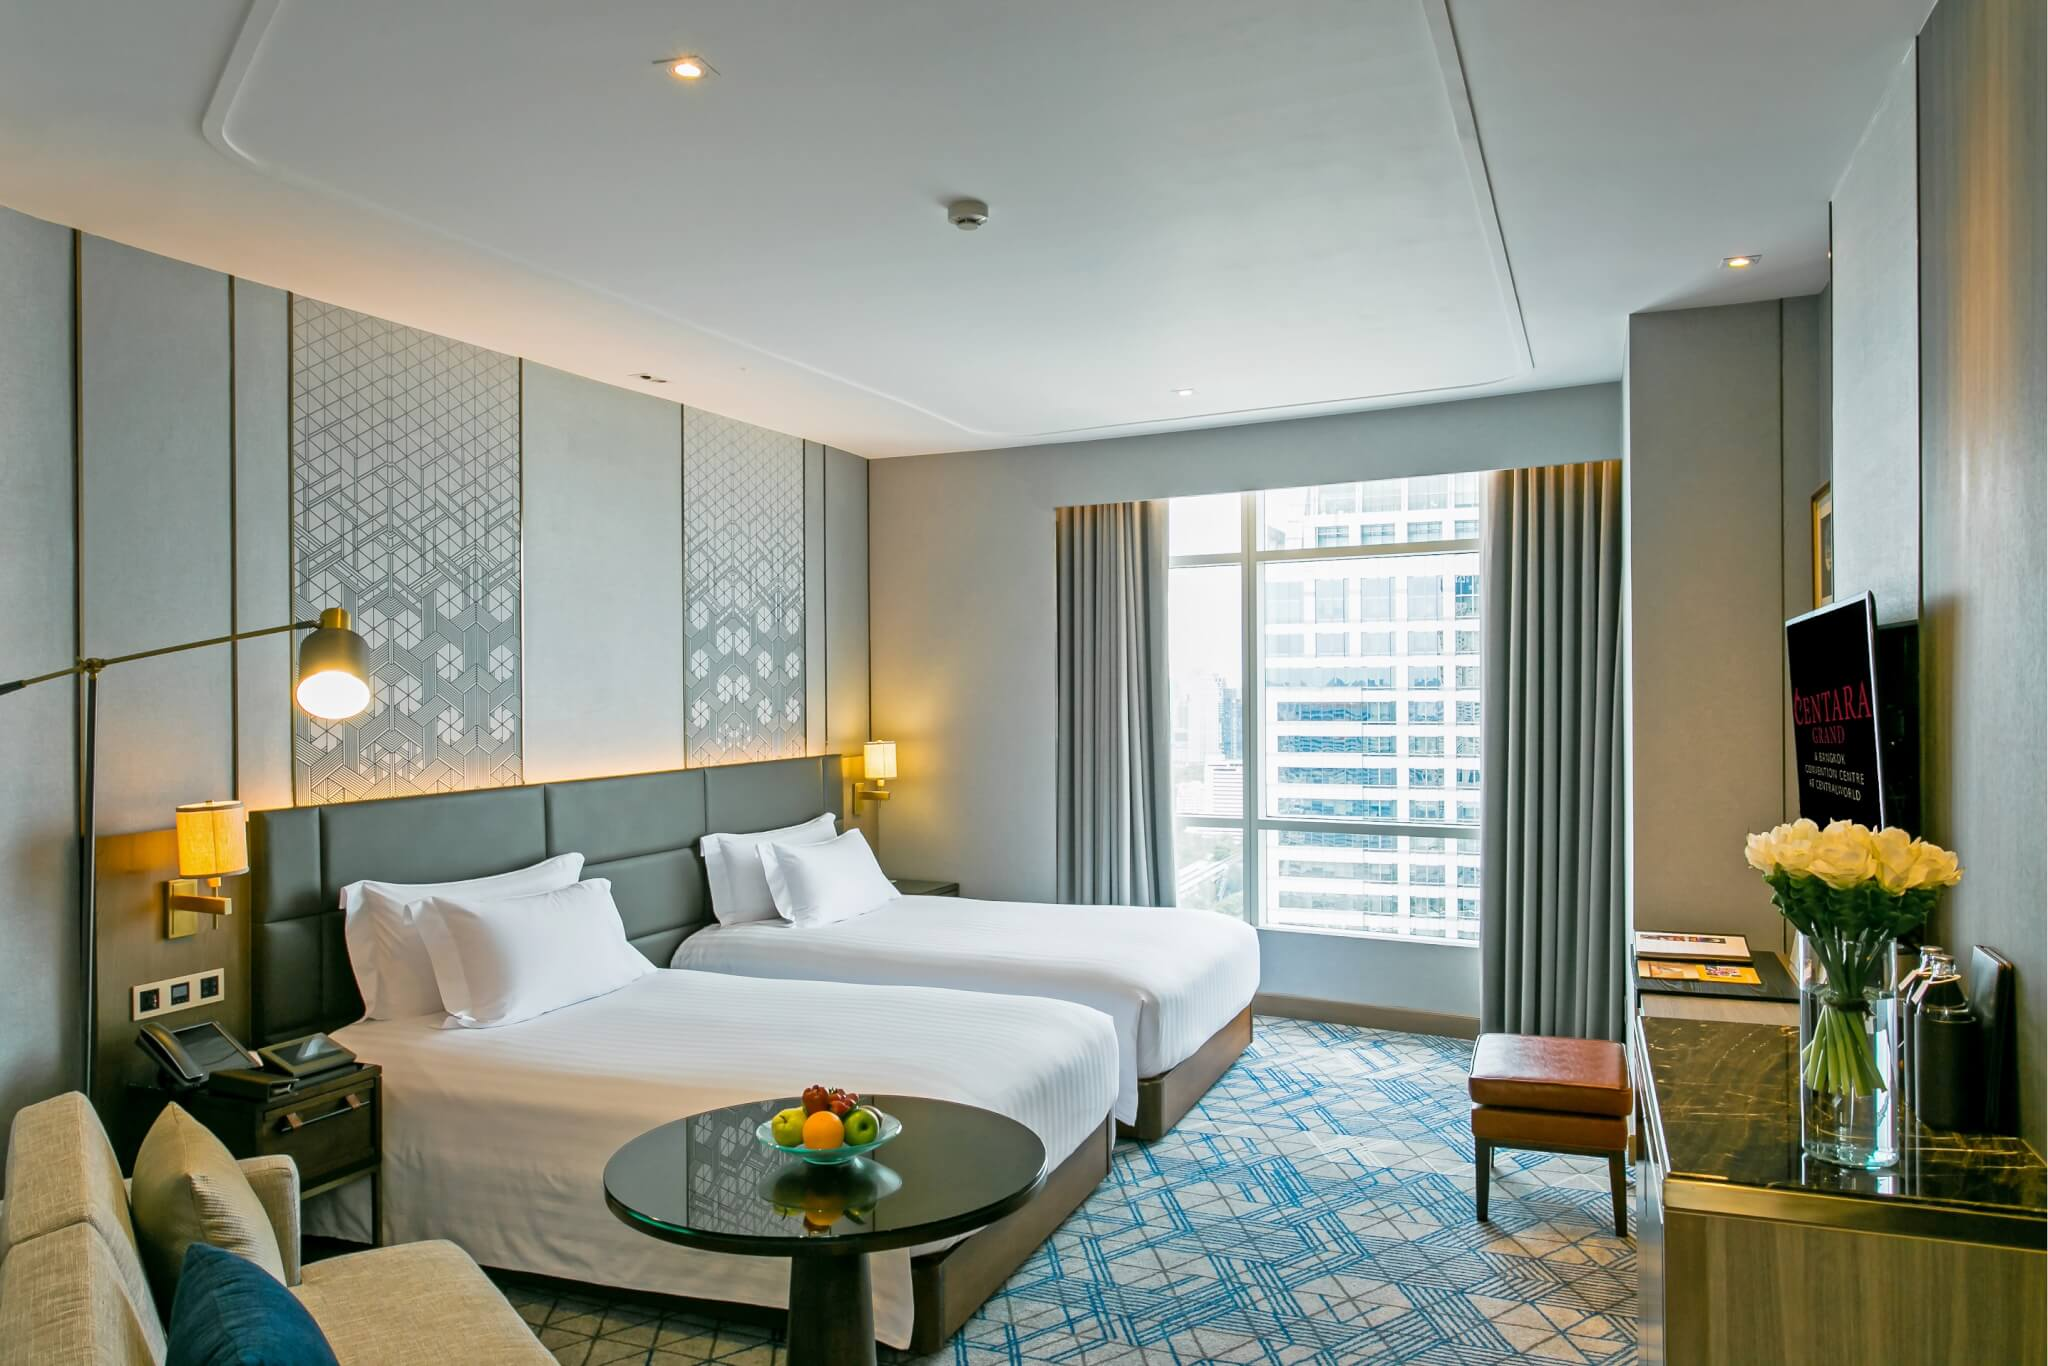 Centara Begins THB 650 Million Room Upgrade at Flagship Bangkok Hotel